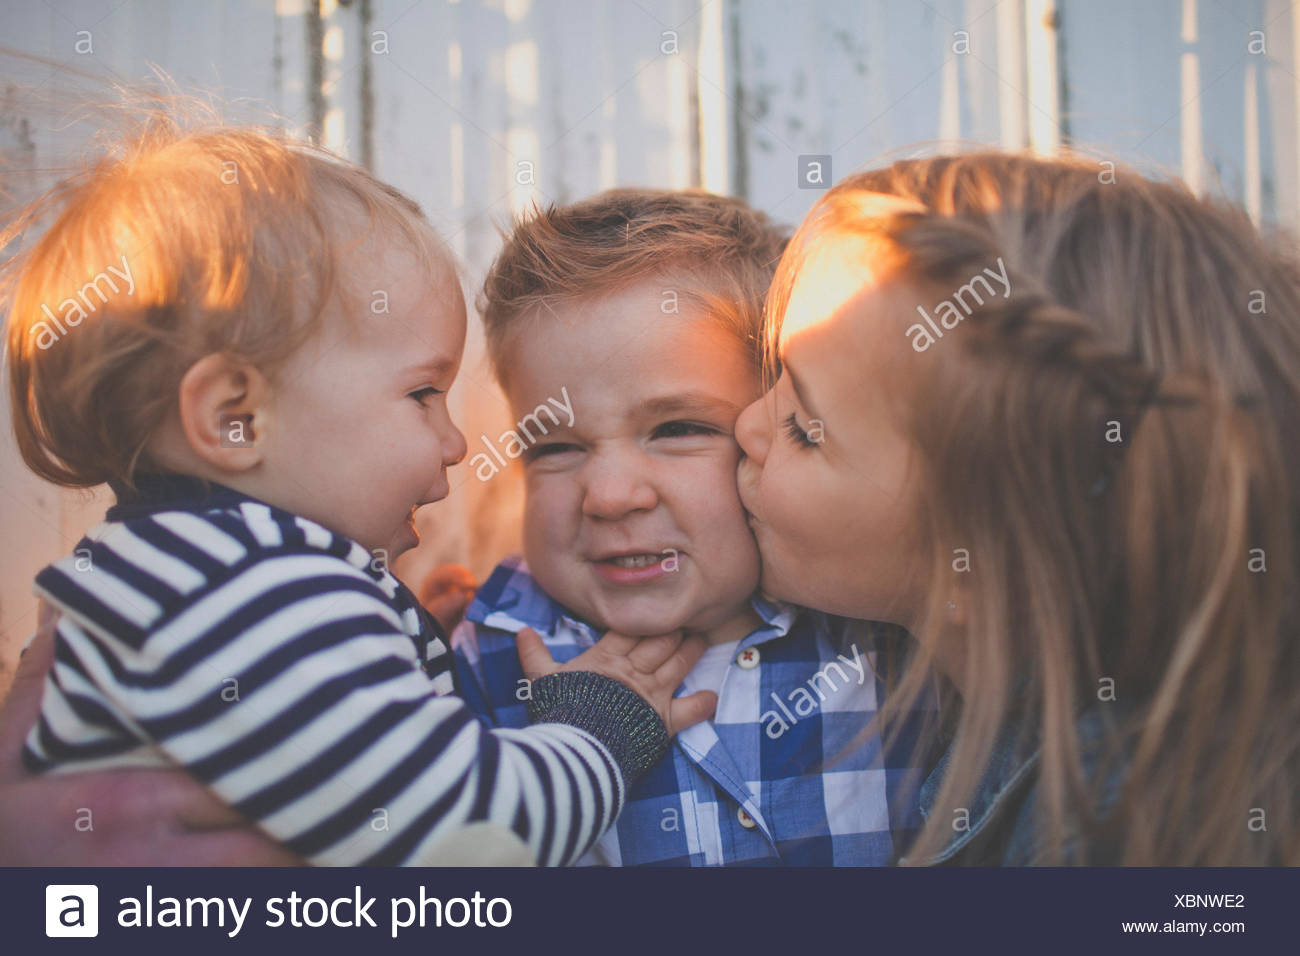 Young sibblings interact with each other. - Stock Image